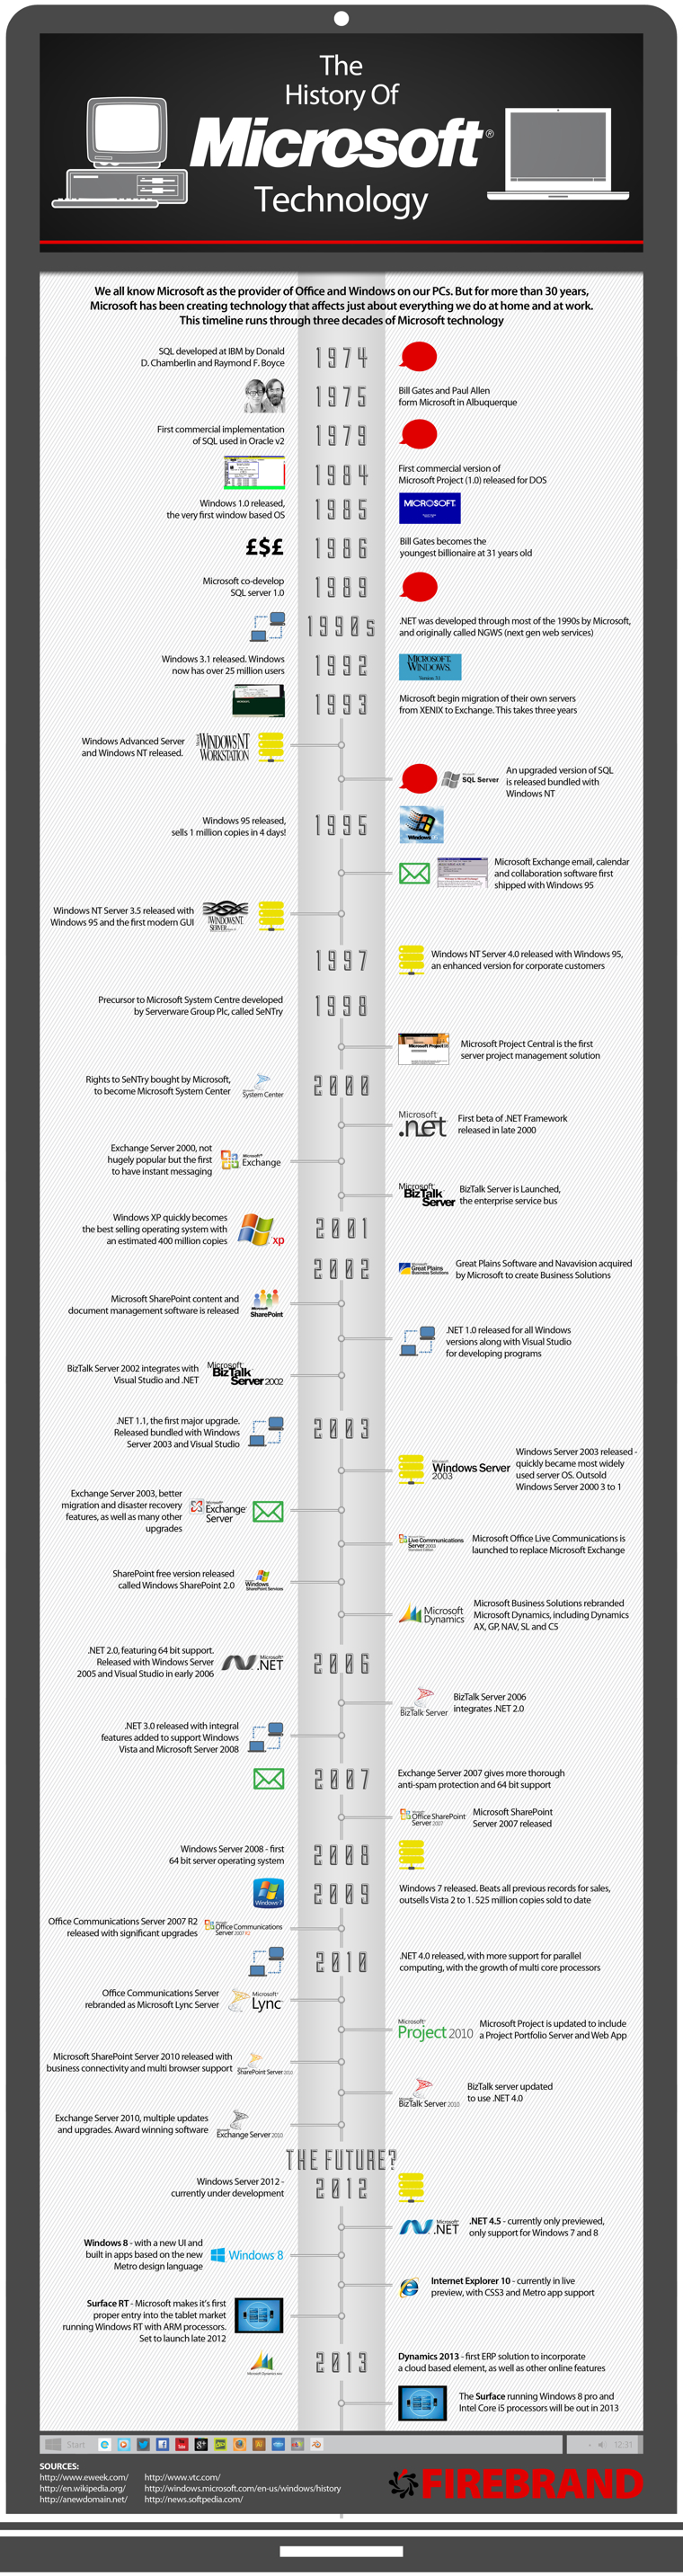 The History of Microsoft Technology